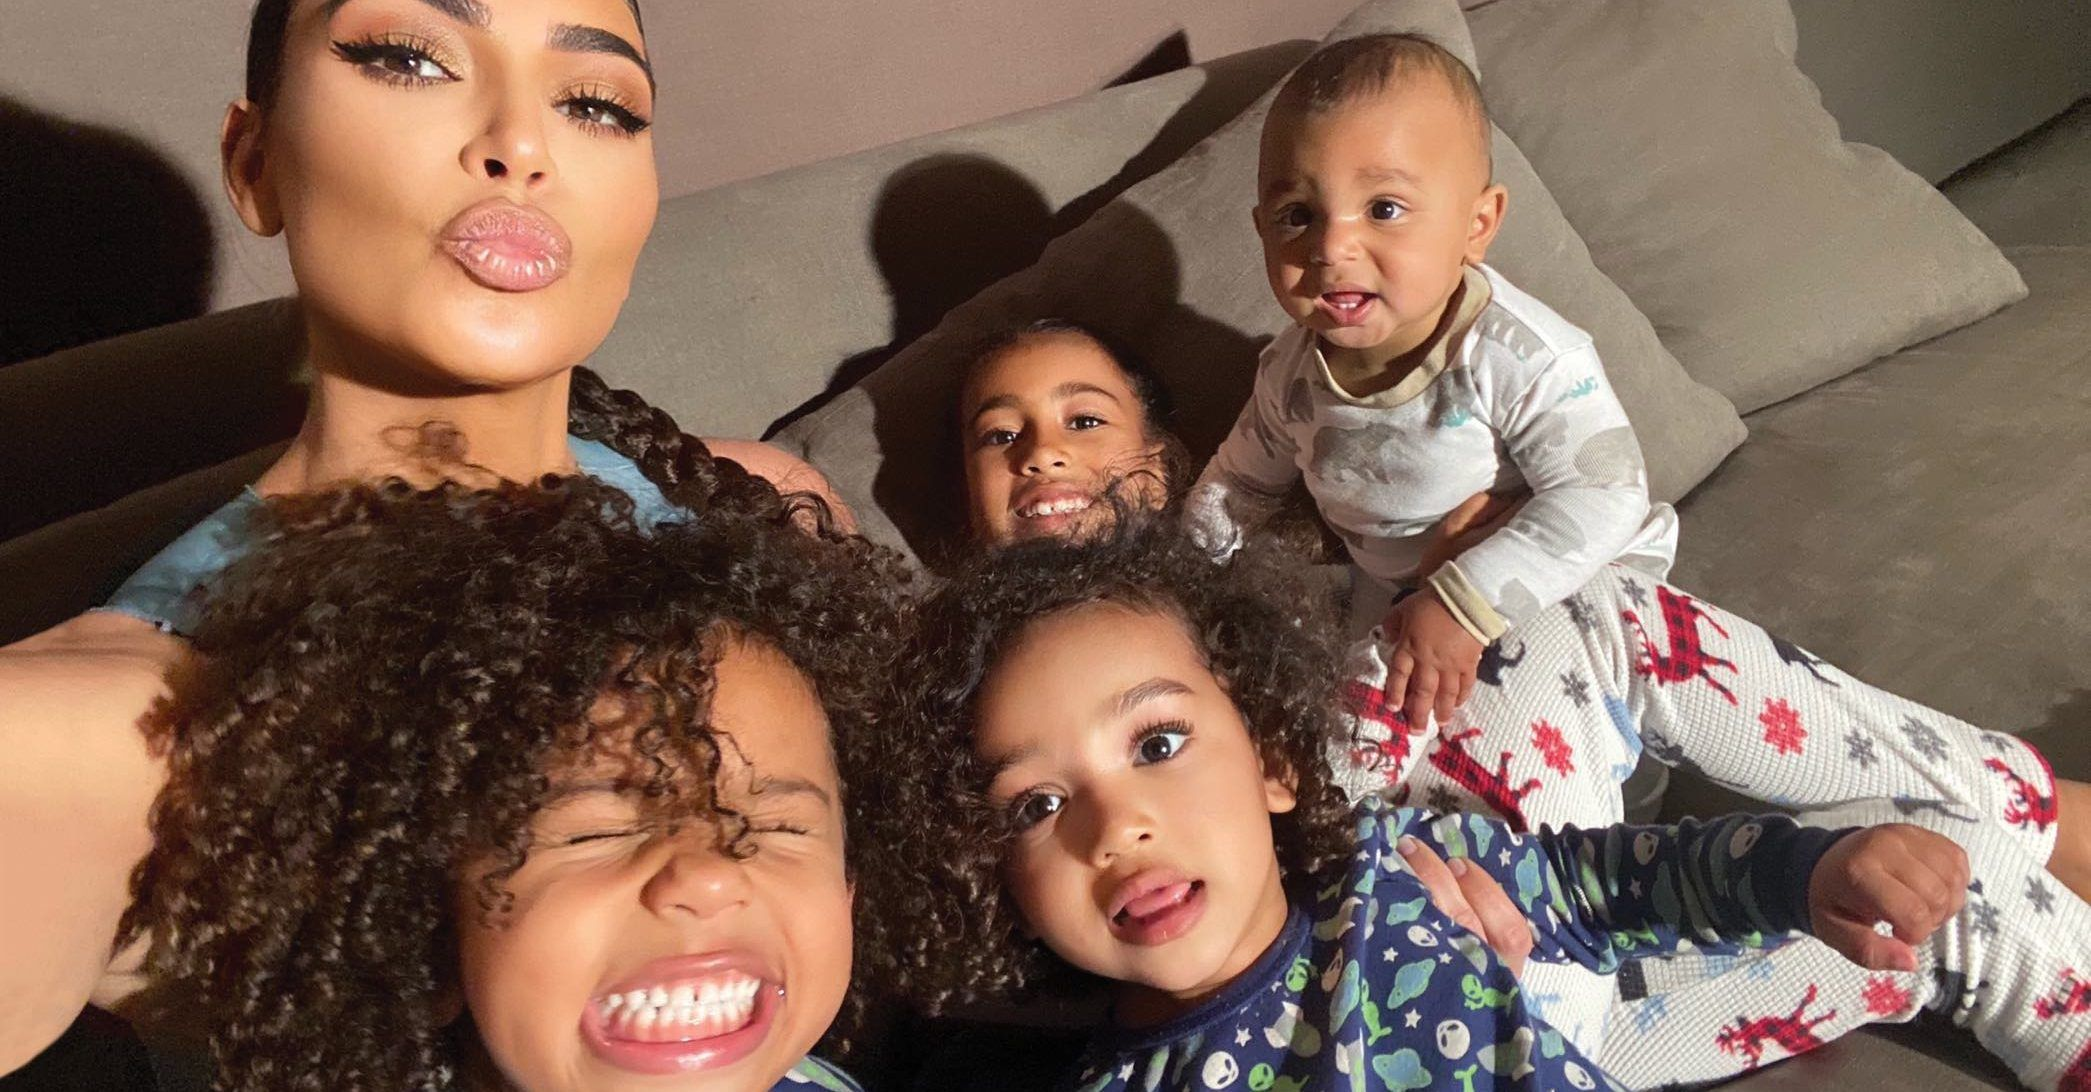 10 Things You Didn't Know About The Kardashian Kids